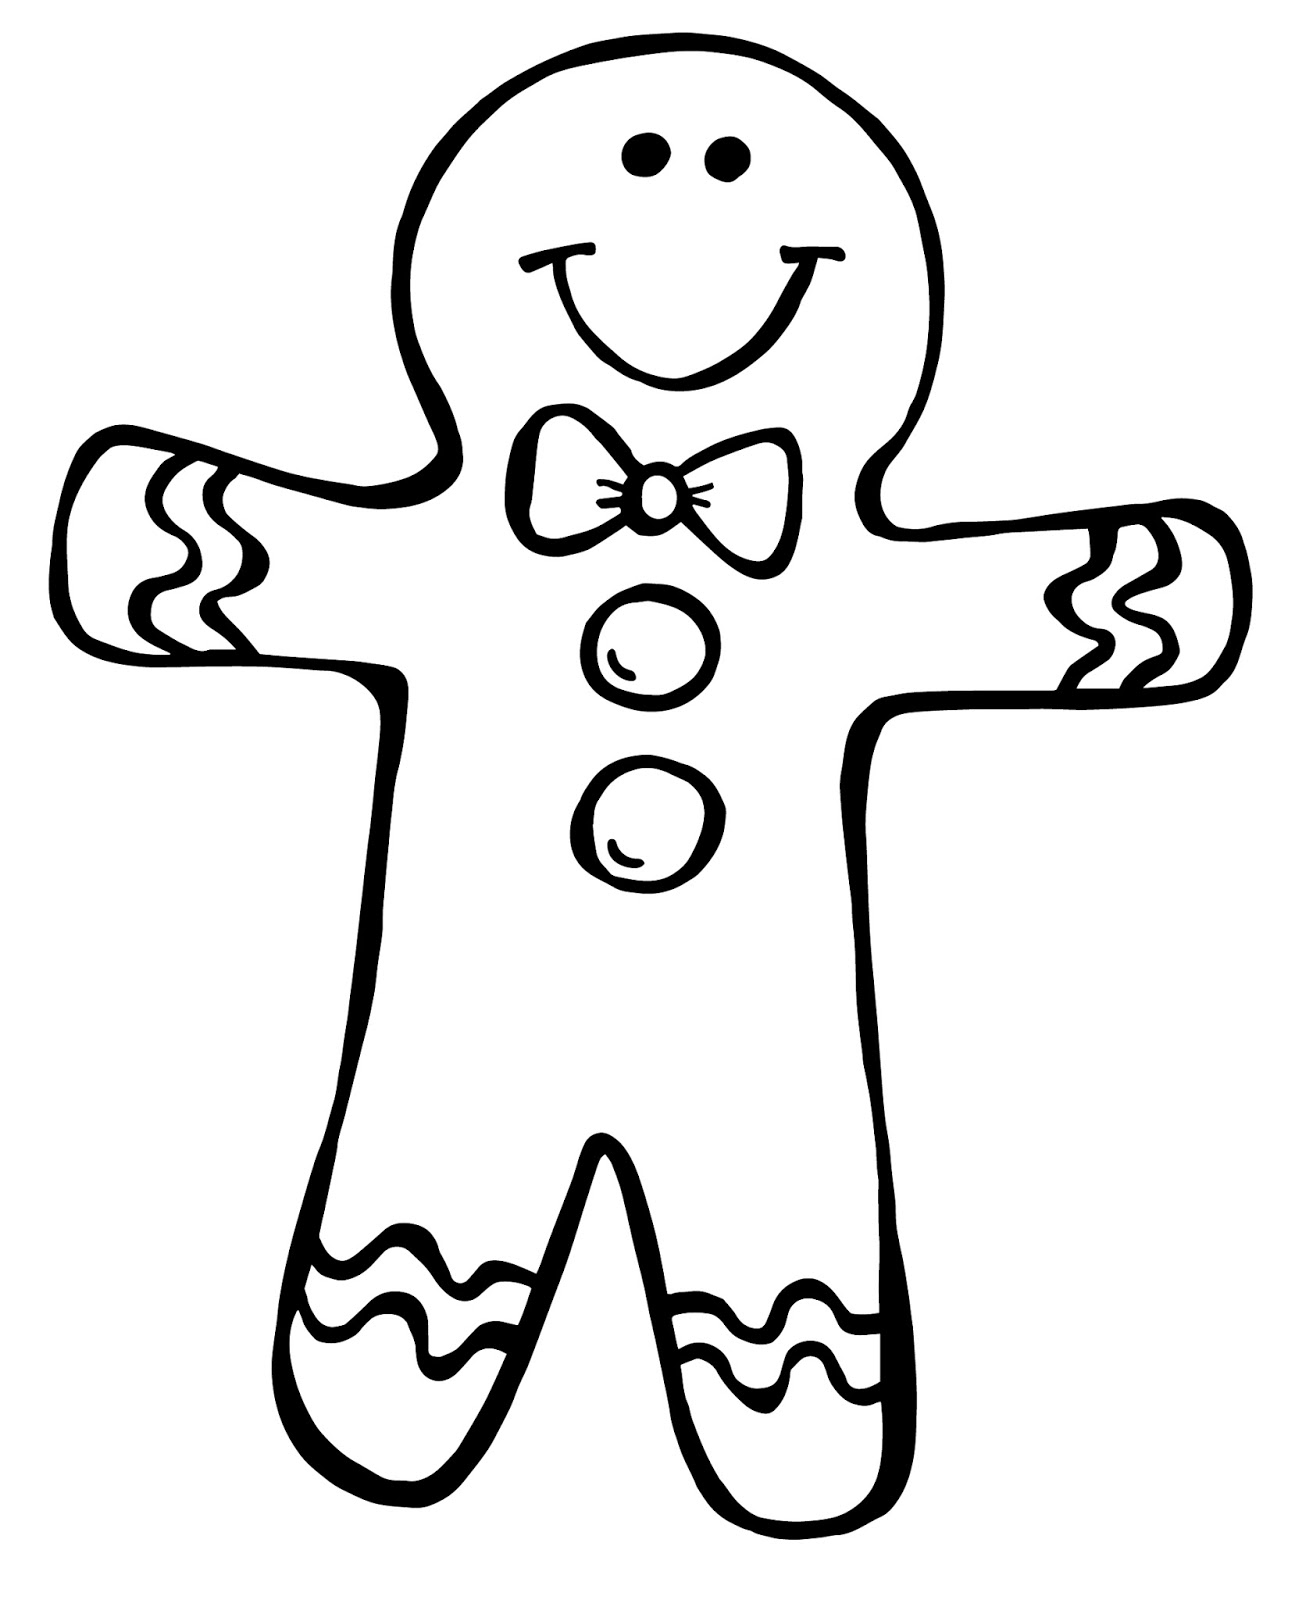 Gingerbread man outline clipart black and white